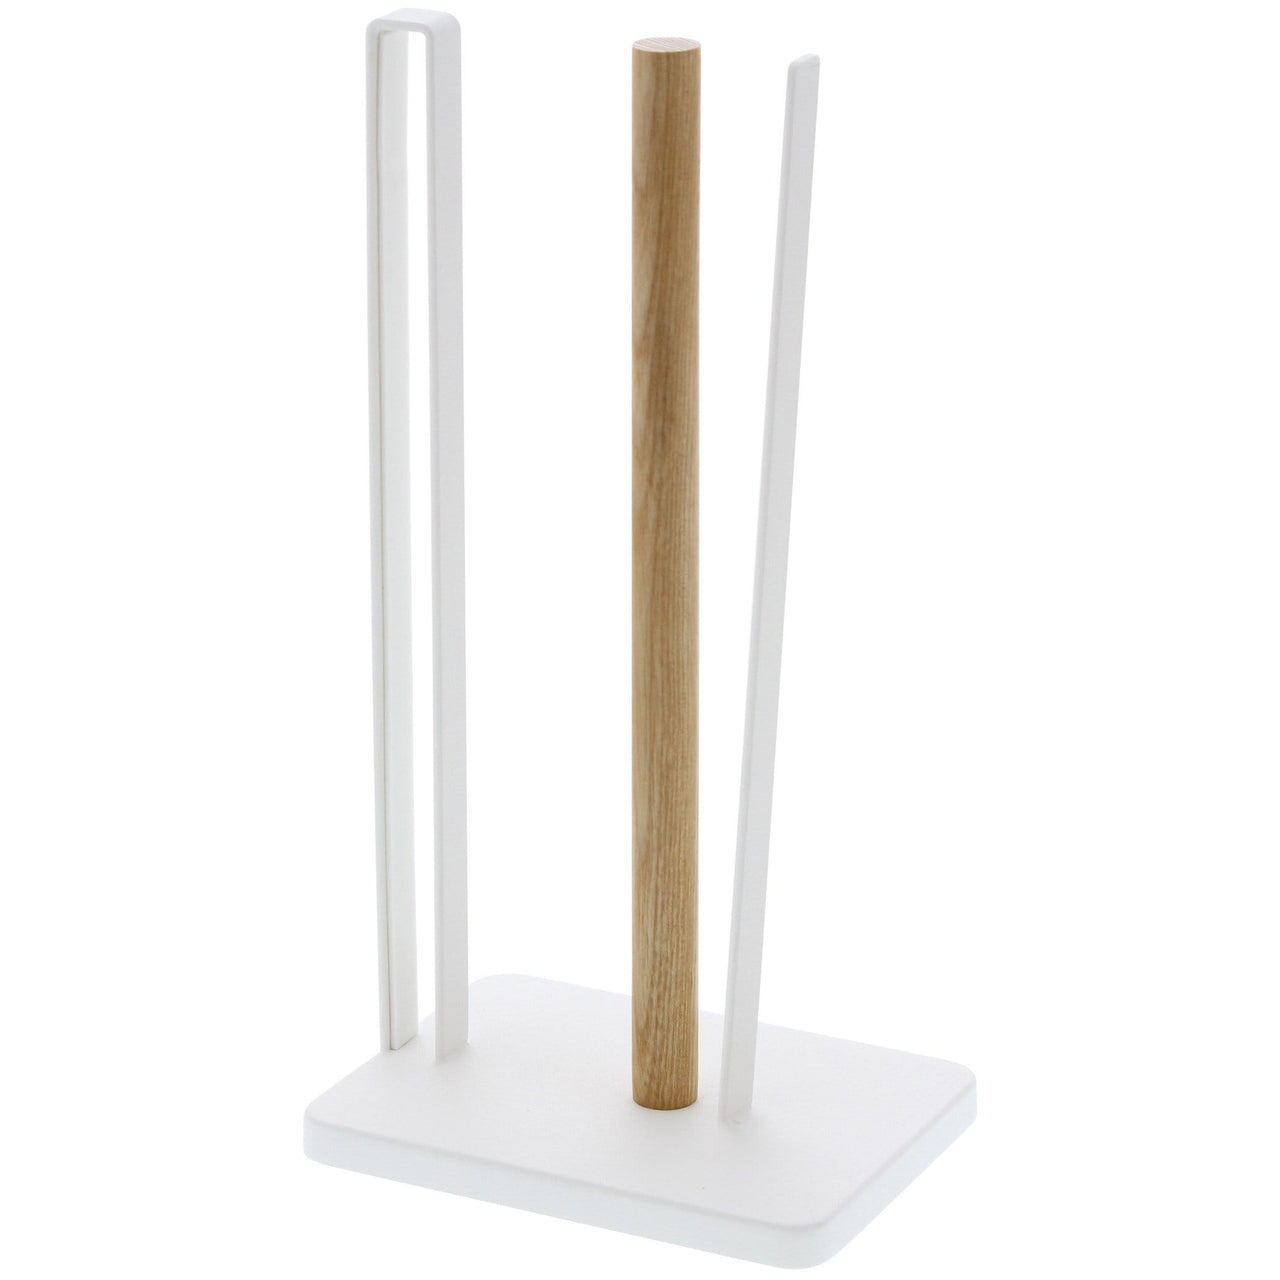 Yamazaki Home Kitchen Organization Tosca One-Handed Paper Towel Holder